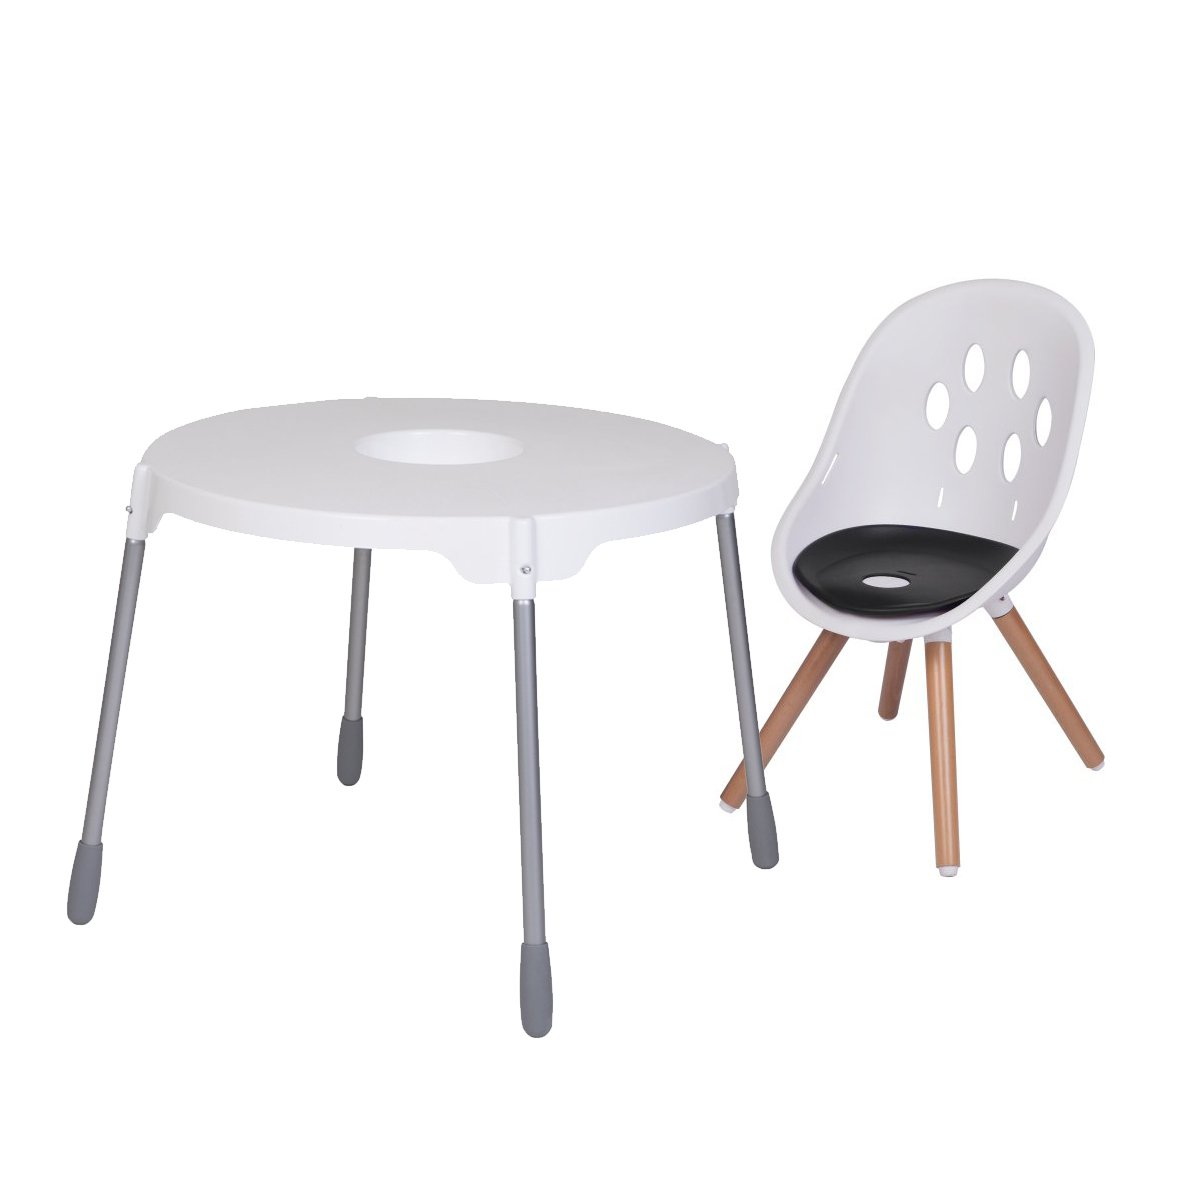 https://cdn.accentuate.io/4676347428952/19272668184664/phil_and_teds_poppy_wood_leg_high_chair_to_my_chair_dual_modes_1_combo-v1630984576232.jpg?1200x1200